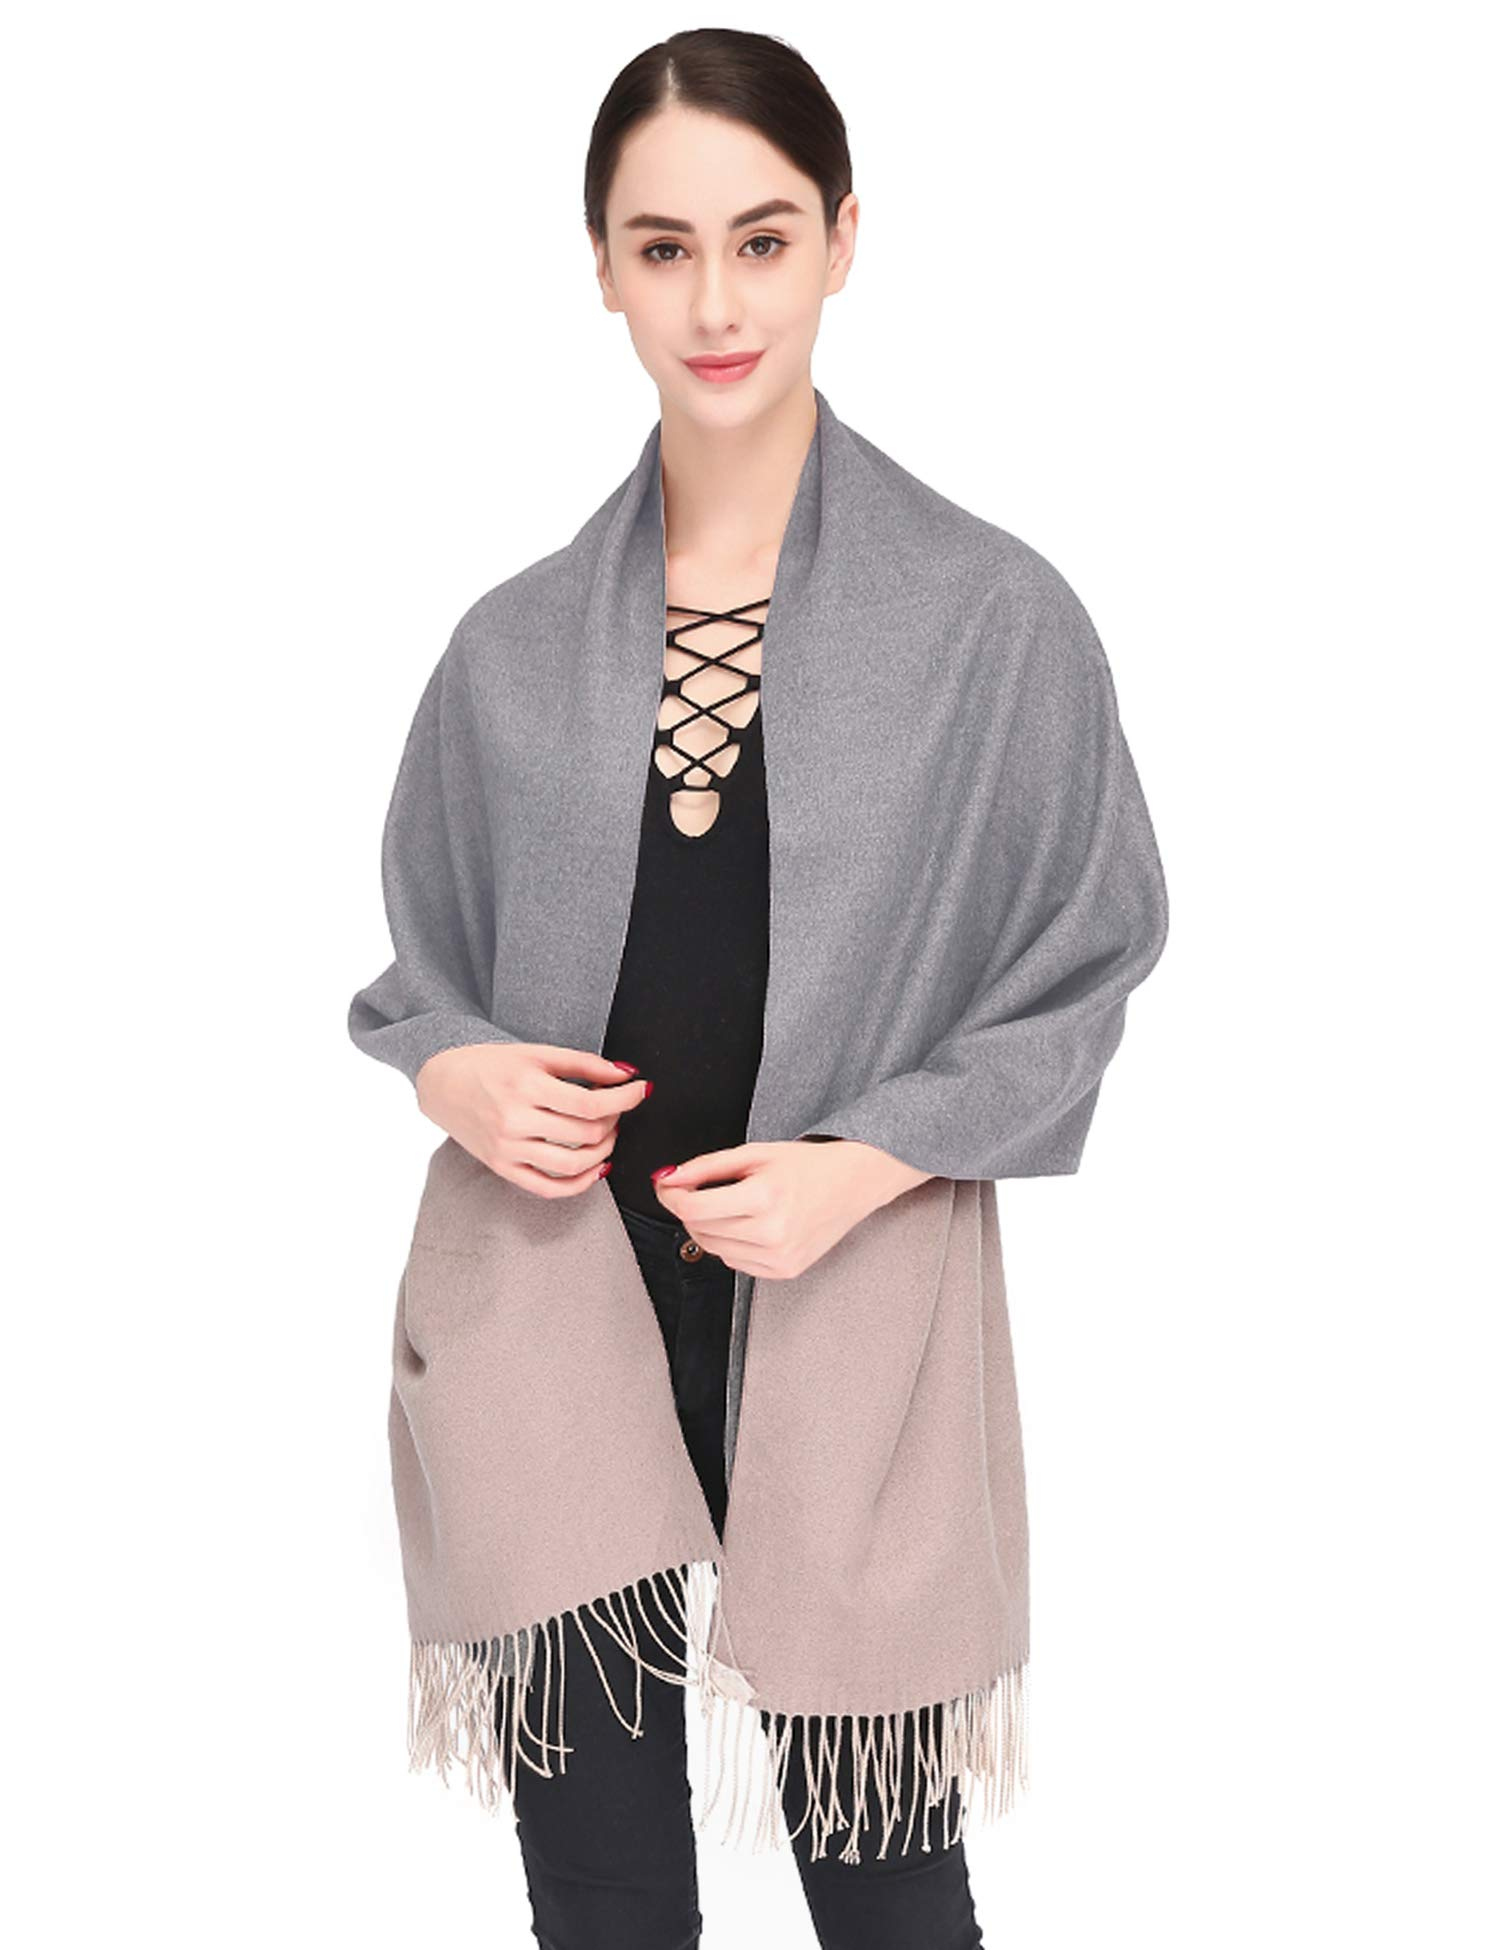 Luxuriously Soft Large Winter Scarves GIft Box Women Stylish Warm Blanket Scarf Solid Oversized Pashmina Cashmere Shawl Wrap Scarves 75''x25.5'' (Light grey/Coffee, Box) by Arctic Penguin